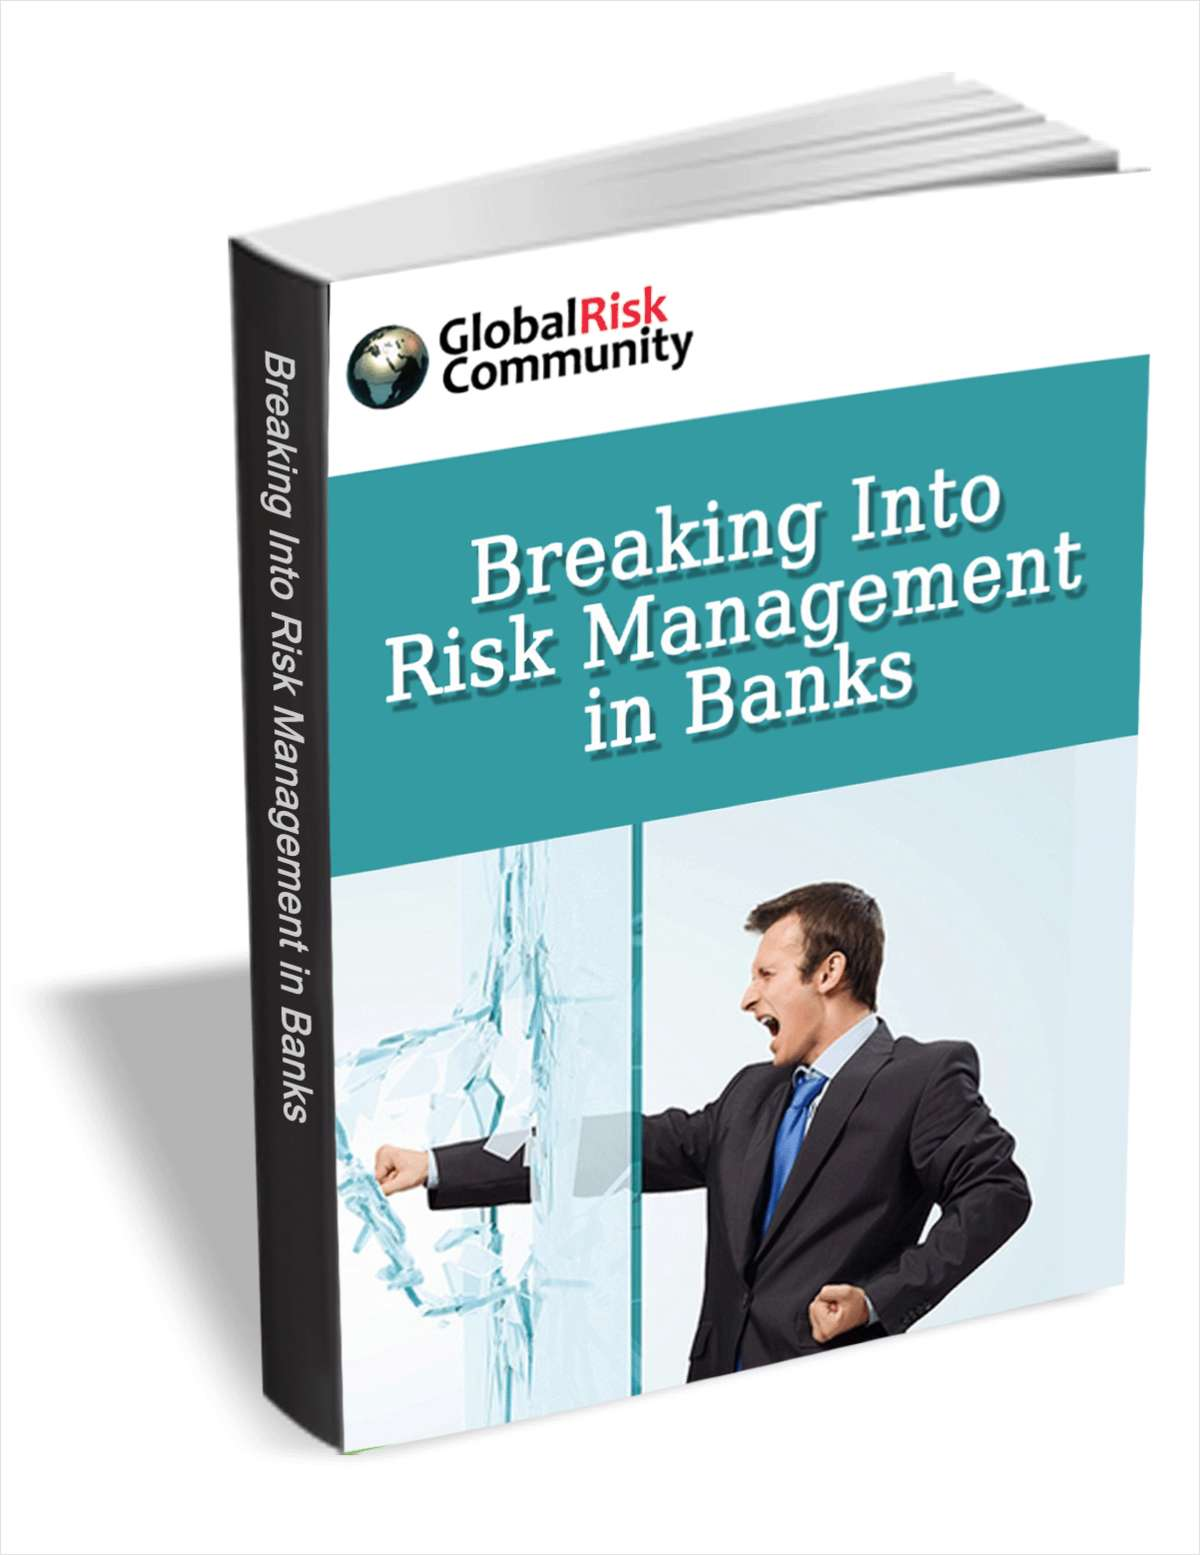 Breaking Into Risk Management in Banks (FREE eBook Training Course) A $47 Value!